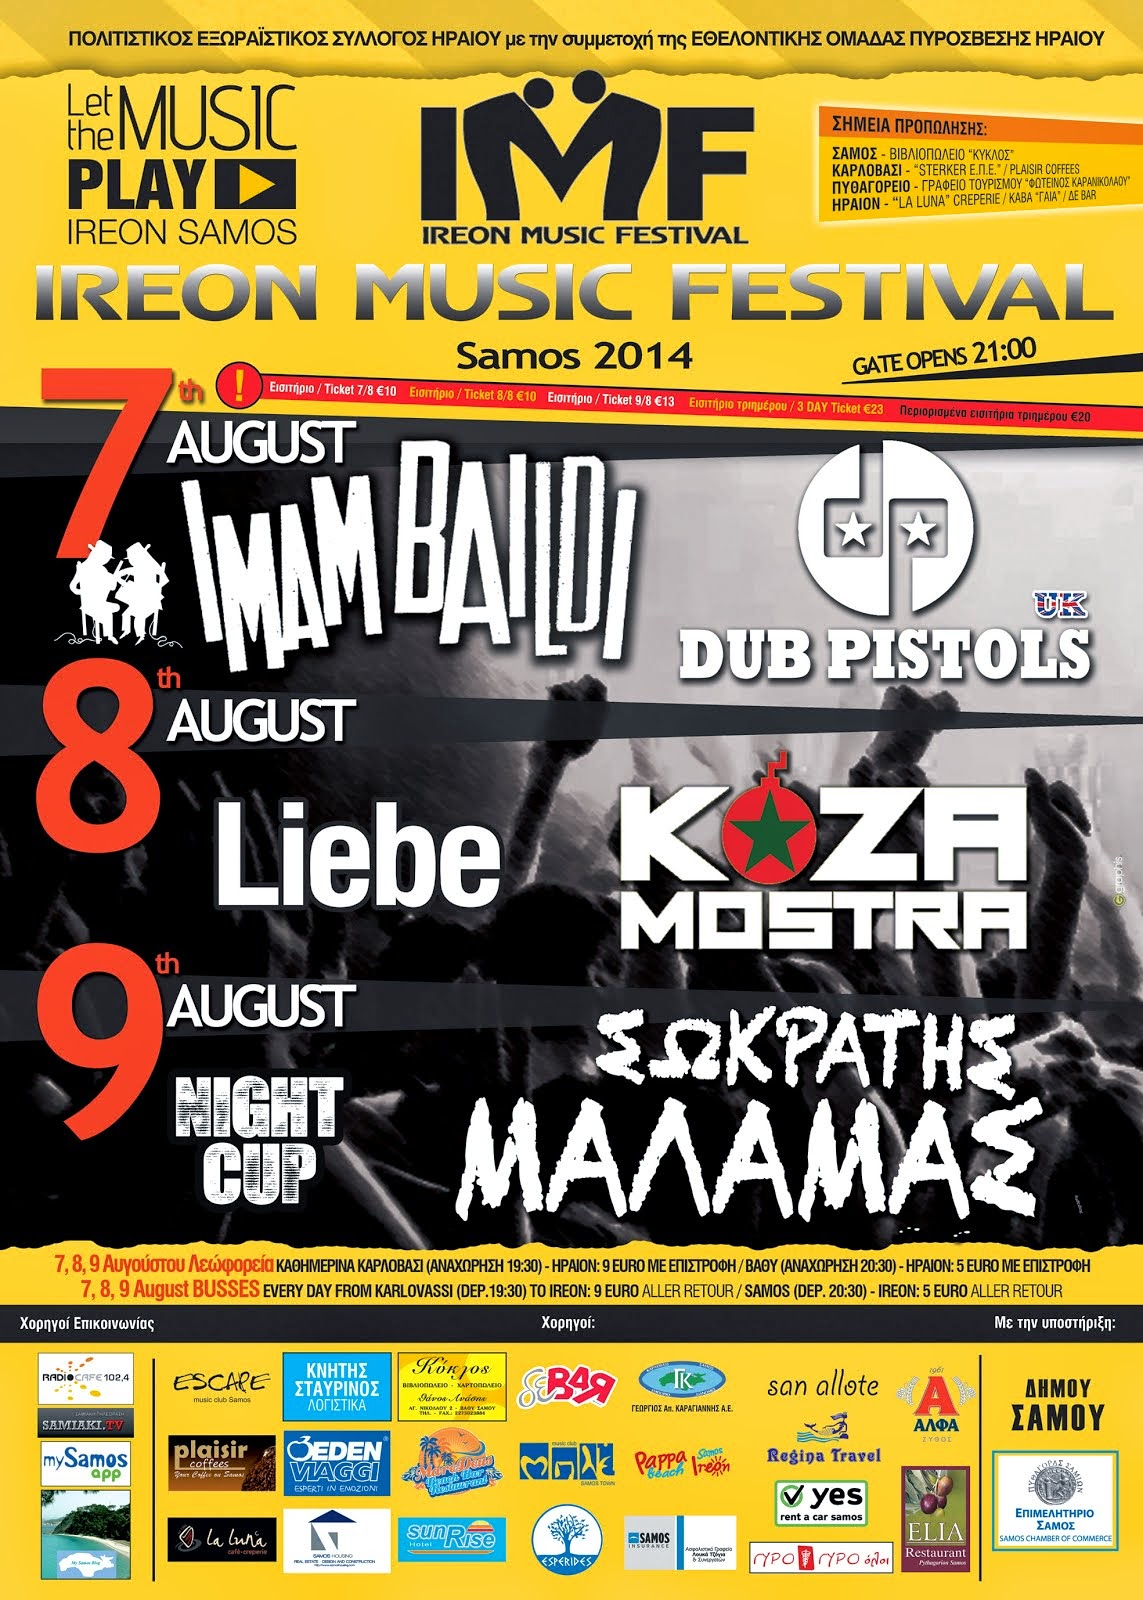 IREON MUSIC FESTIVAL 2014